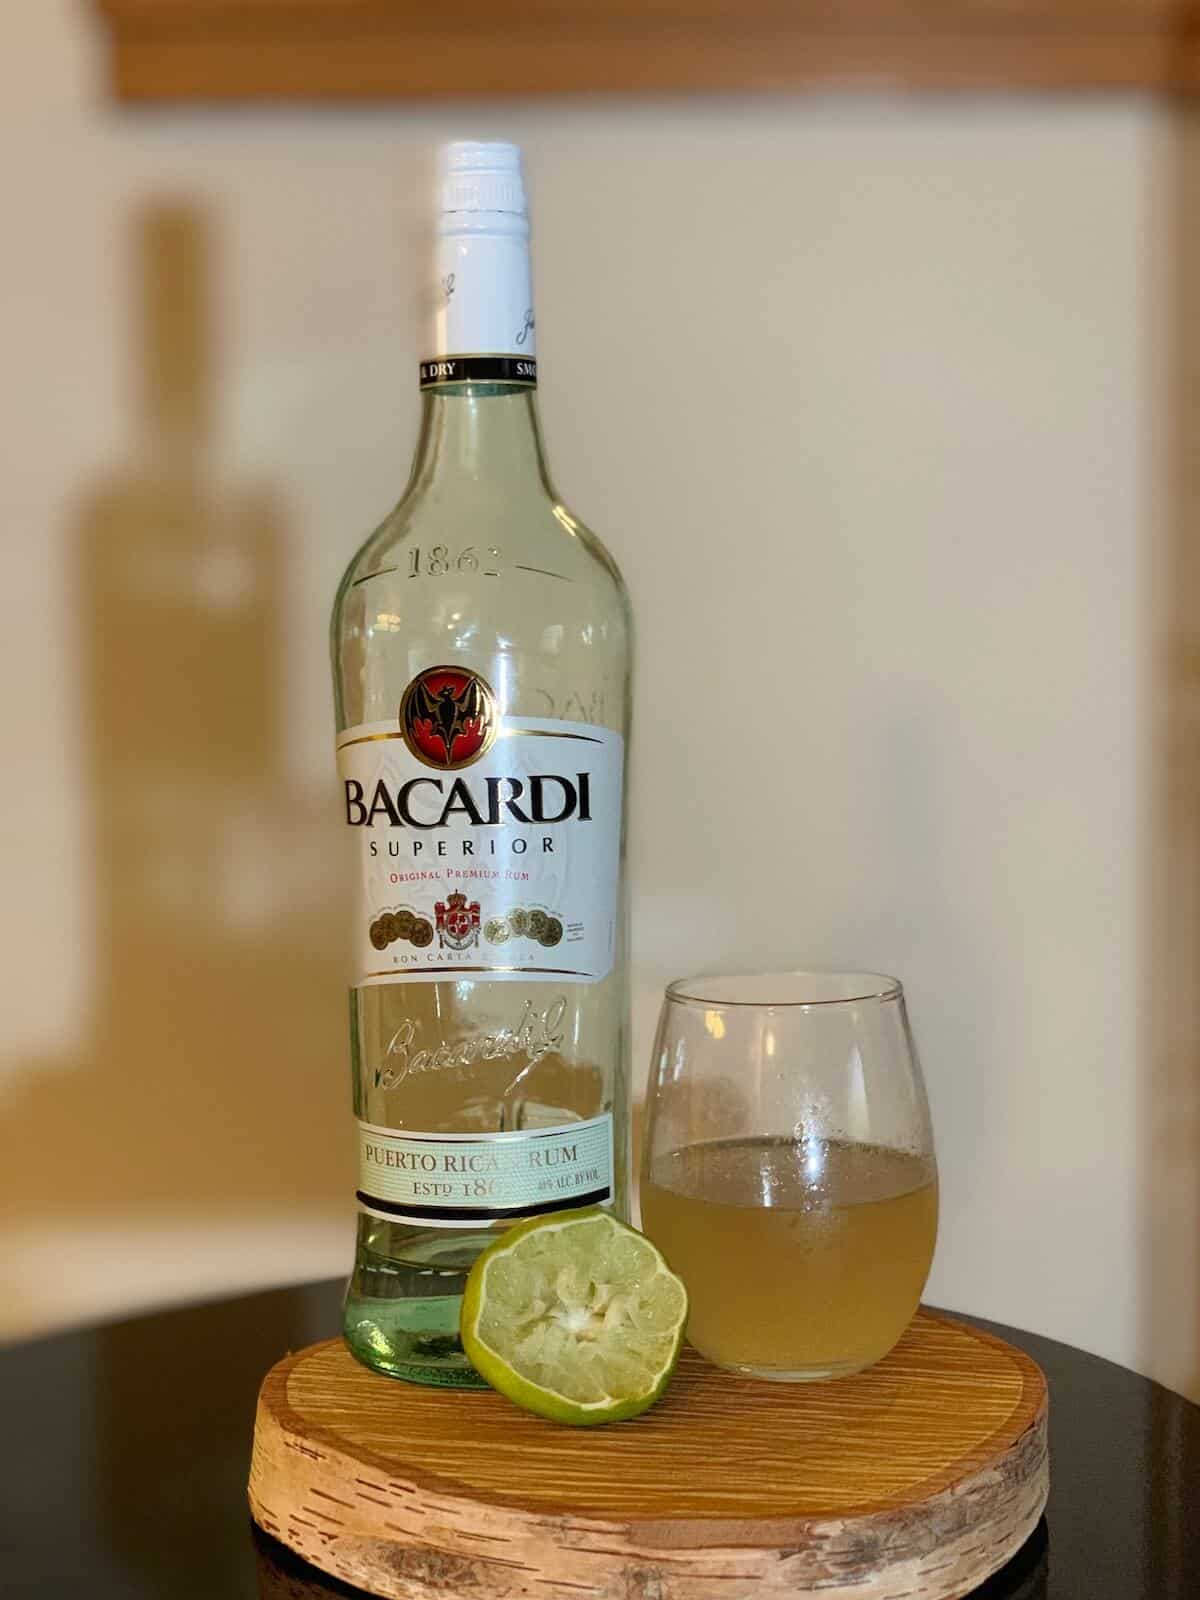 Daiquiri in glass with Bacardi Rum and lime on a table.